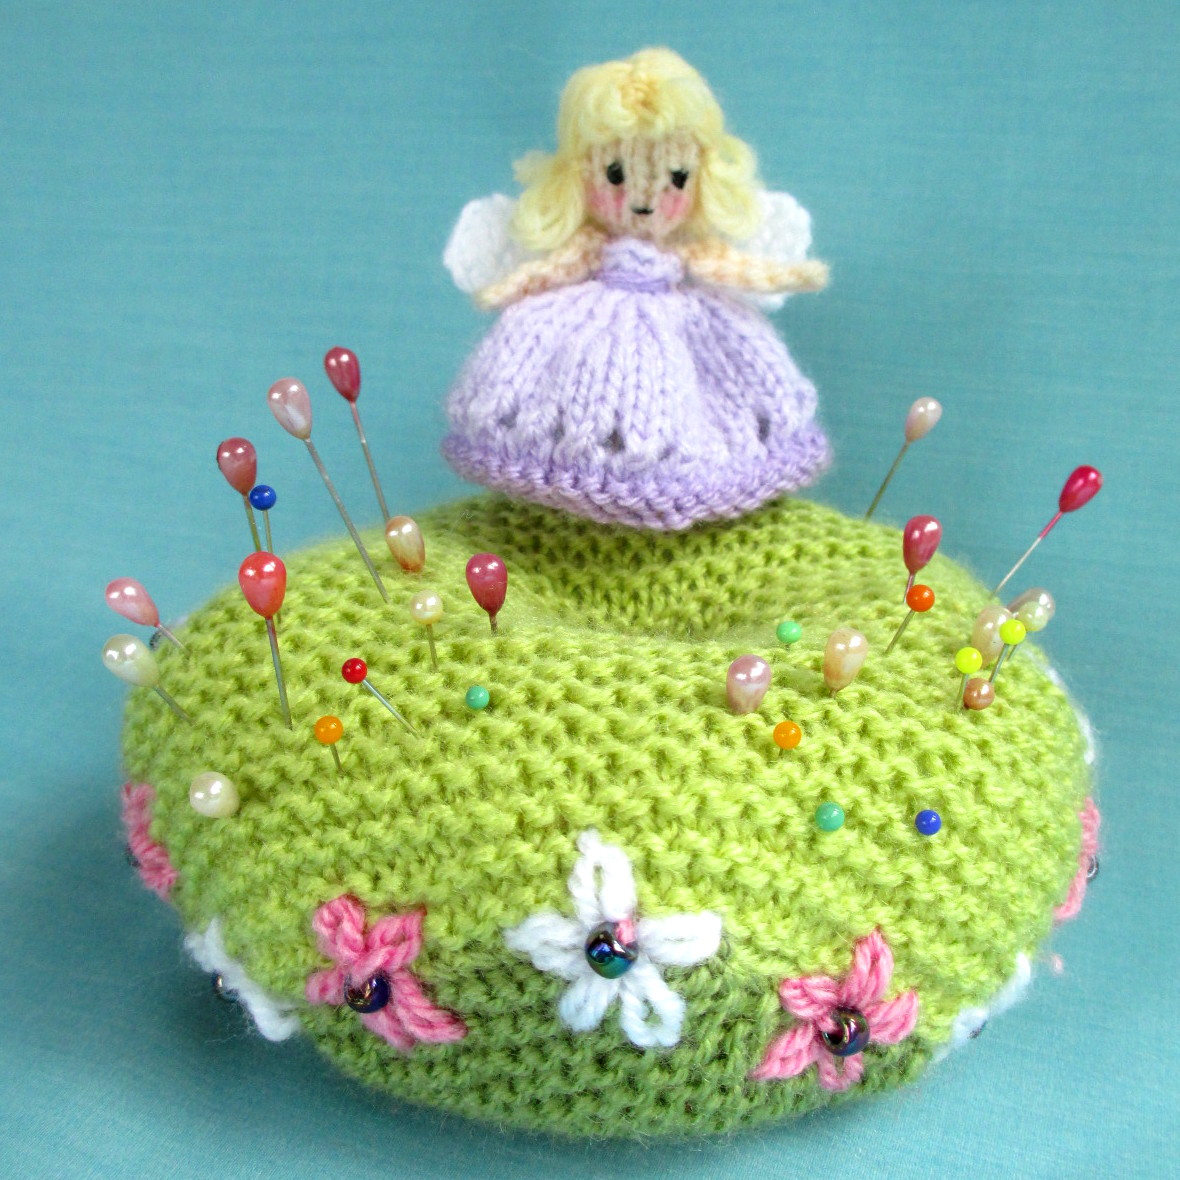 051931a63a9d Flutterby Patch  FREE PATTERN - Fairy and pin cushion